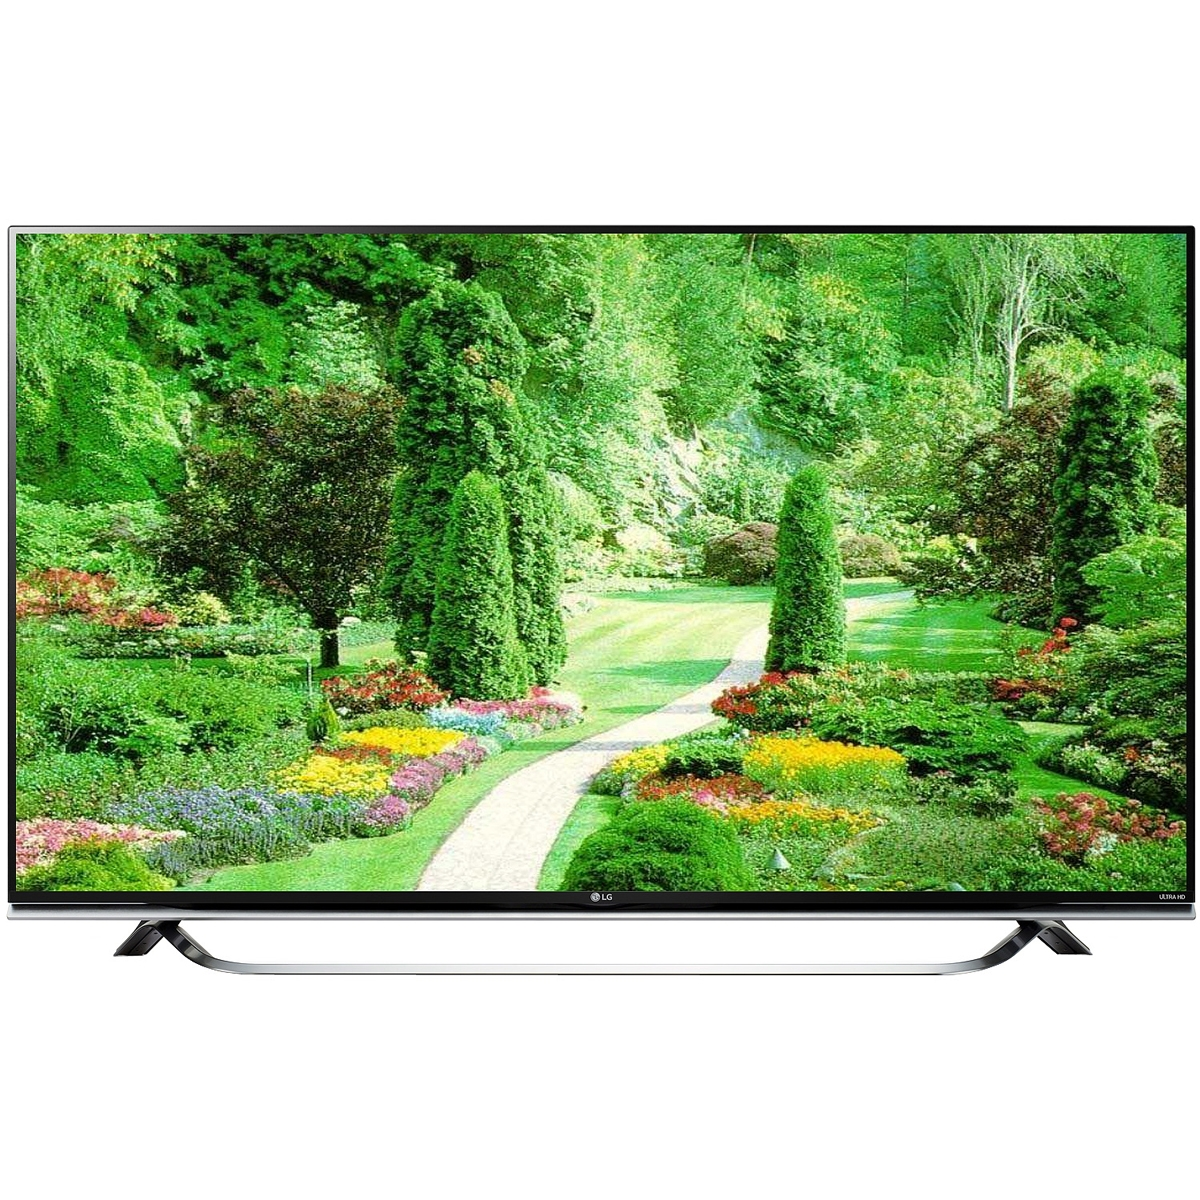 LG 60INCH CLASS UHD 4K  SMART HDTV - 60UF8500 - RESIDENTIAL USA VERSION -LG ORIGINAL PANEL - FULL ONE YEAR MANUFACTURERS WARRANTY!